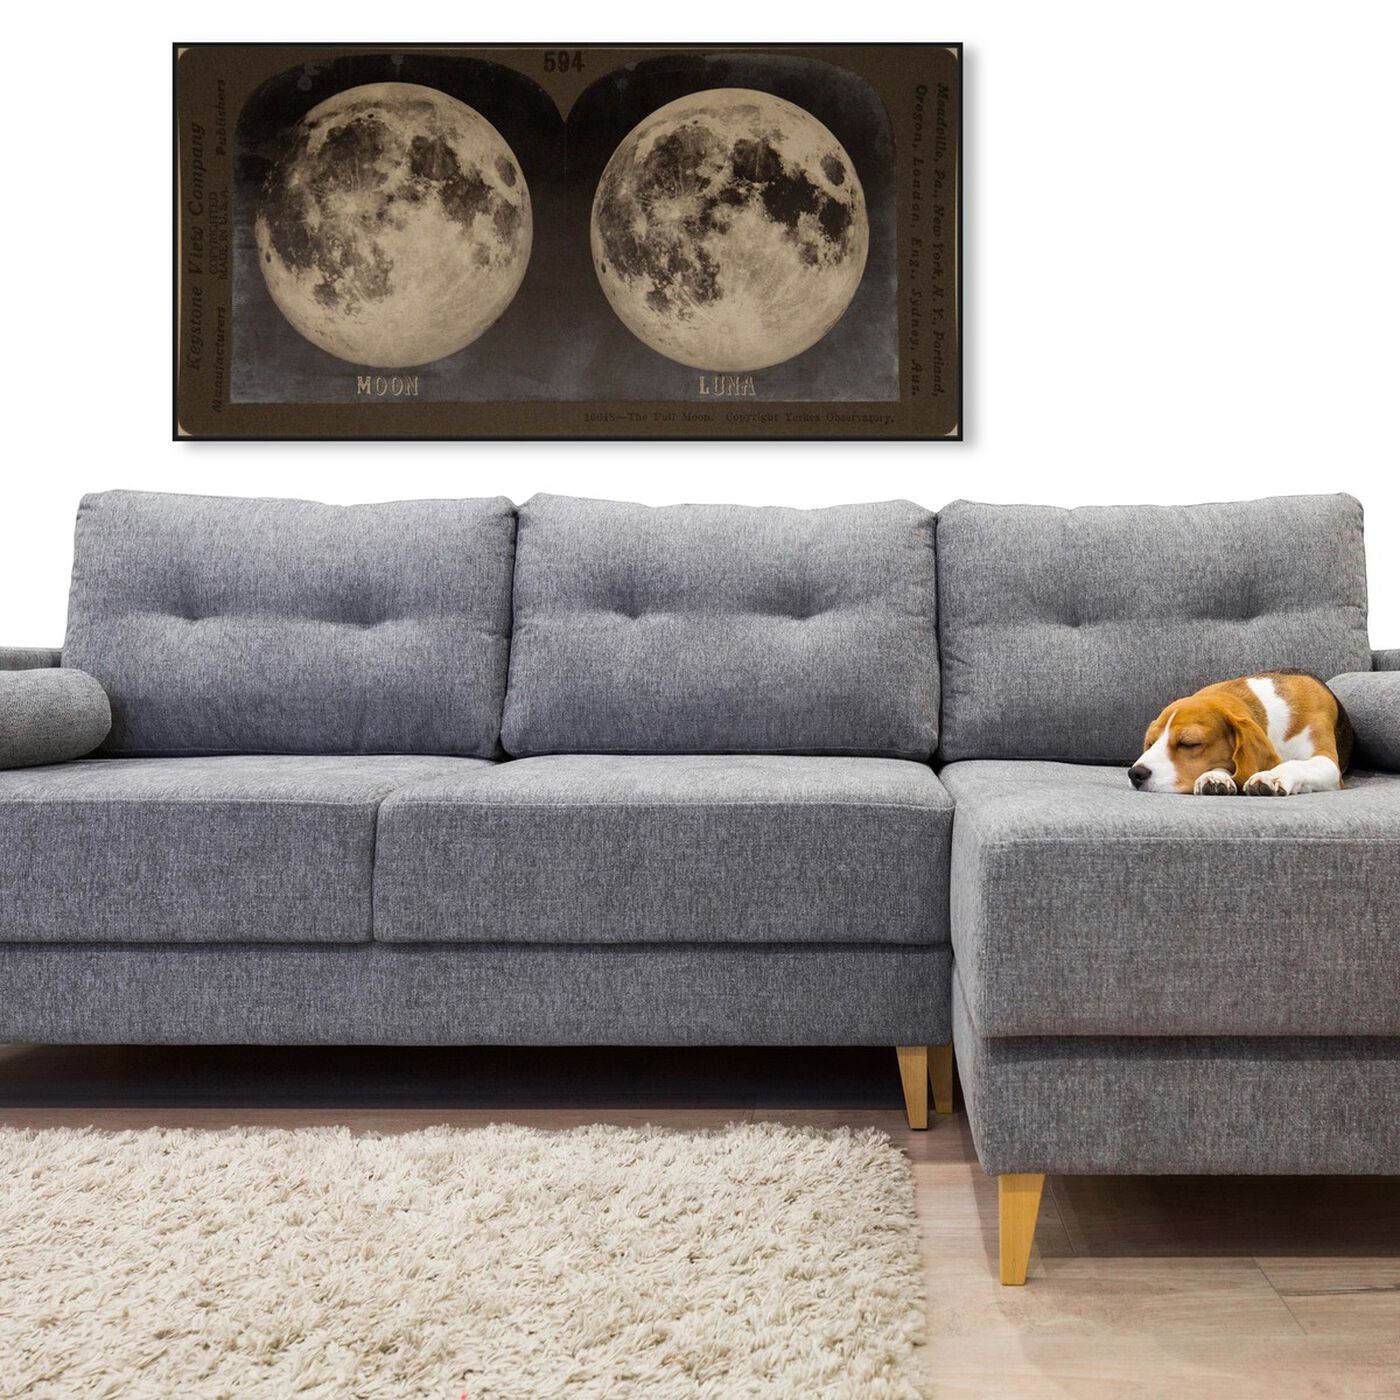 Hanging view of Full Moon featuring astronomy and space and moons art.